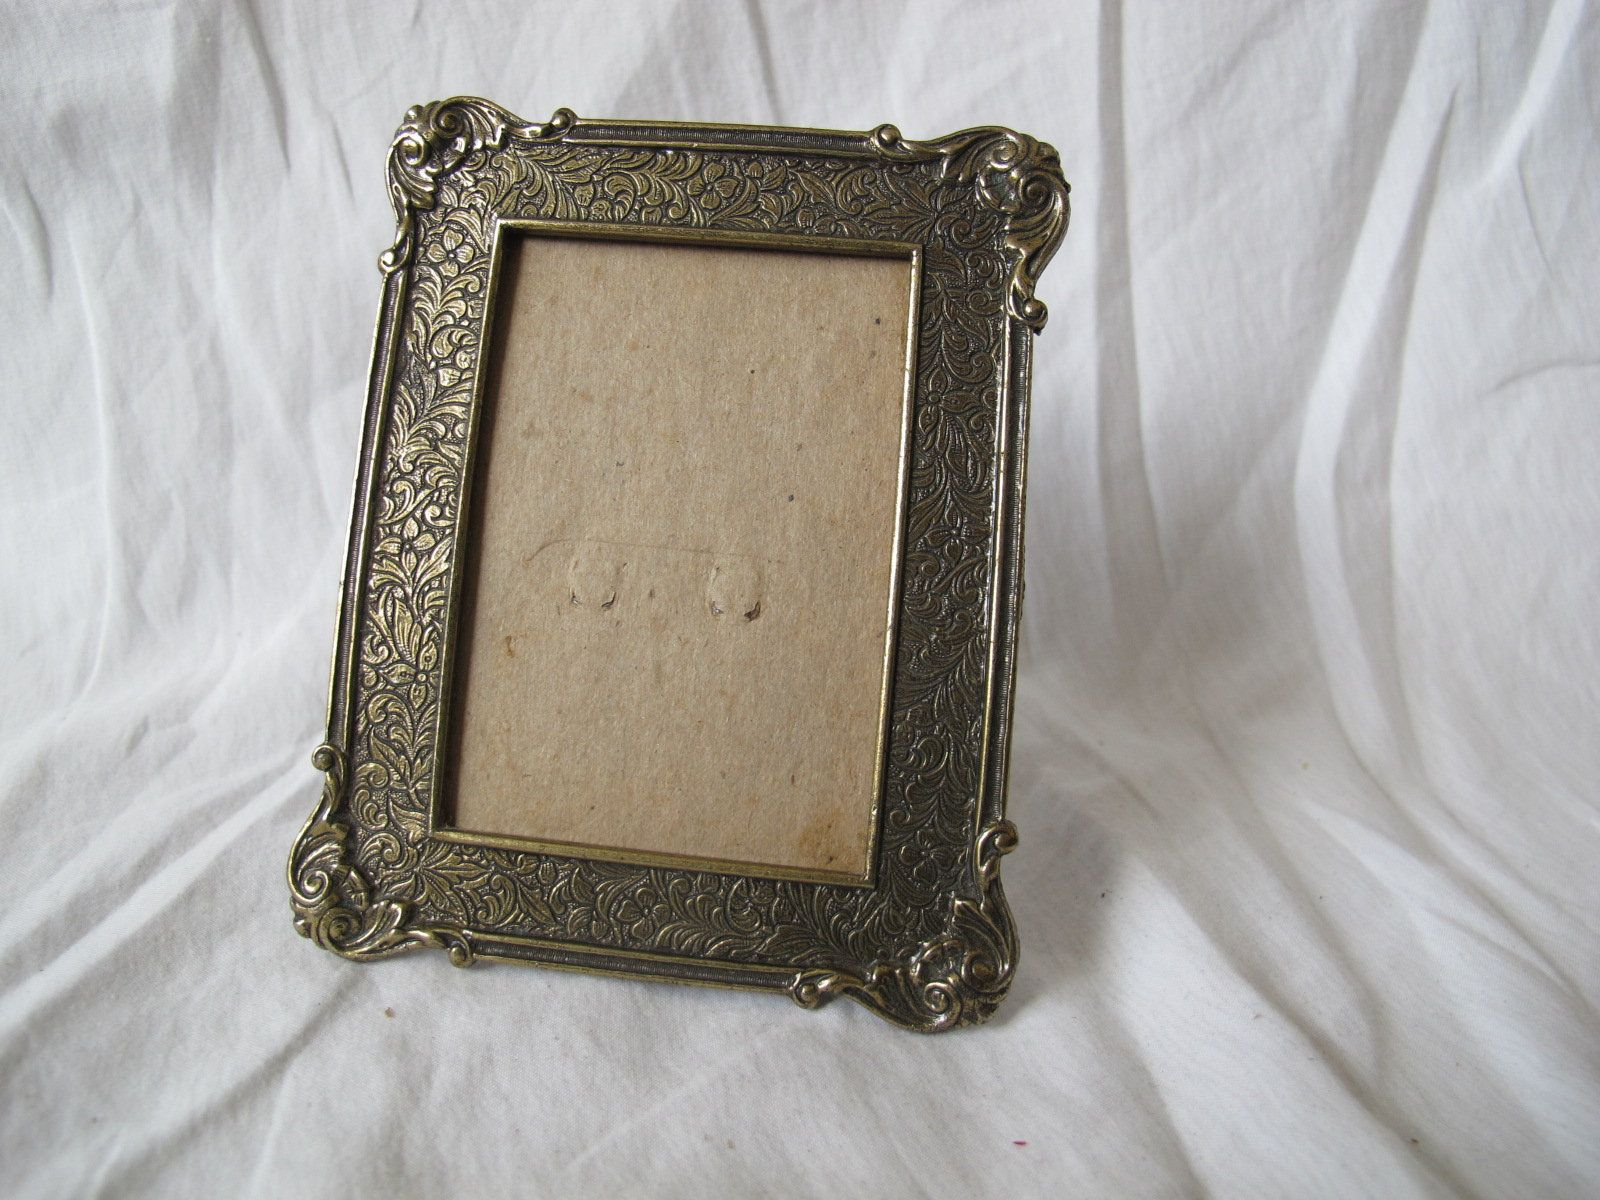 Small Rectangular Floral Frame 3 3 8 By 2 1 2 Inches 1928 Etsy Small Photo Frames Picture Frame Table Frame